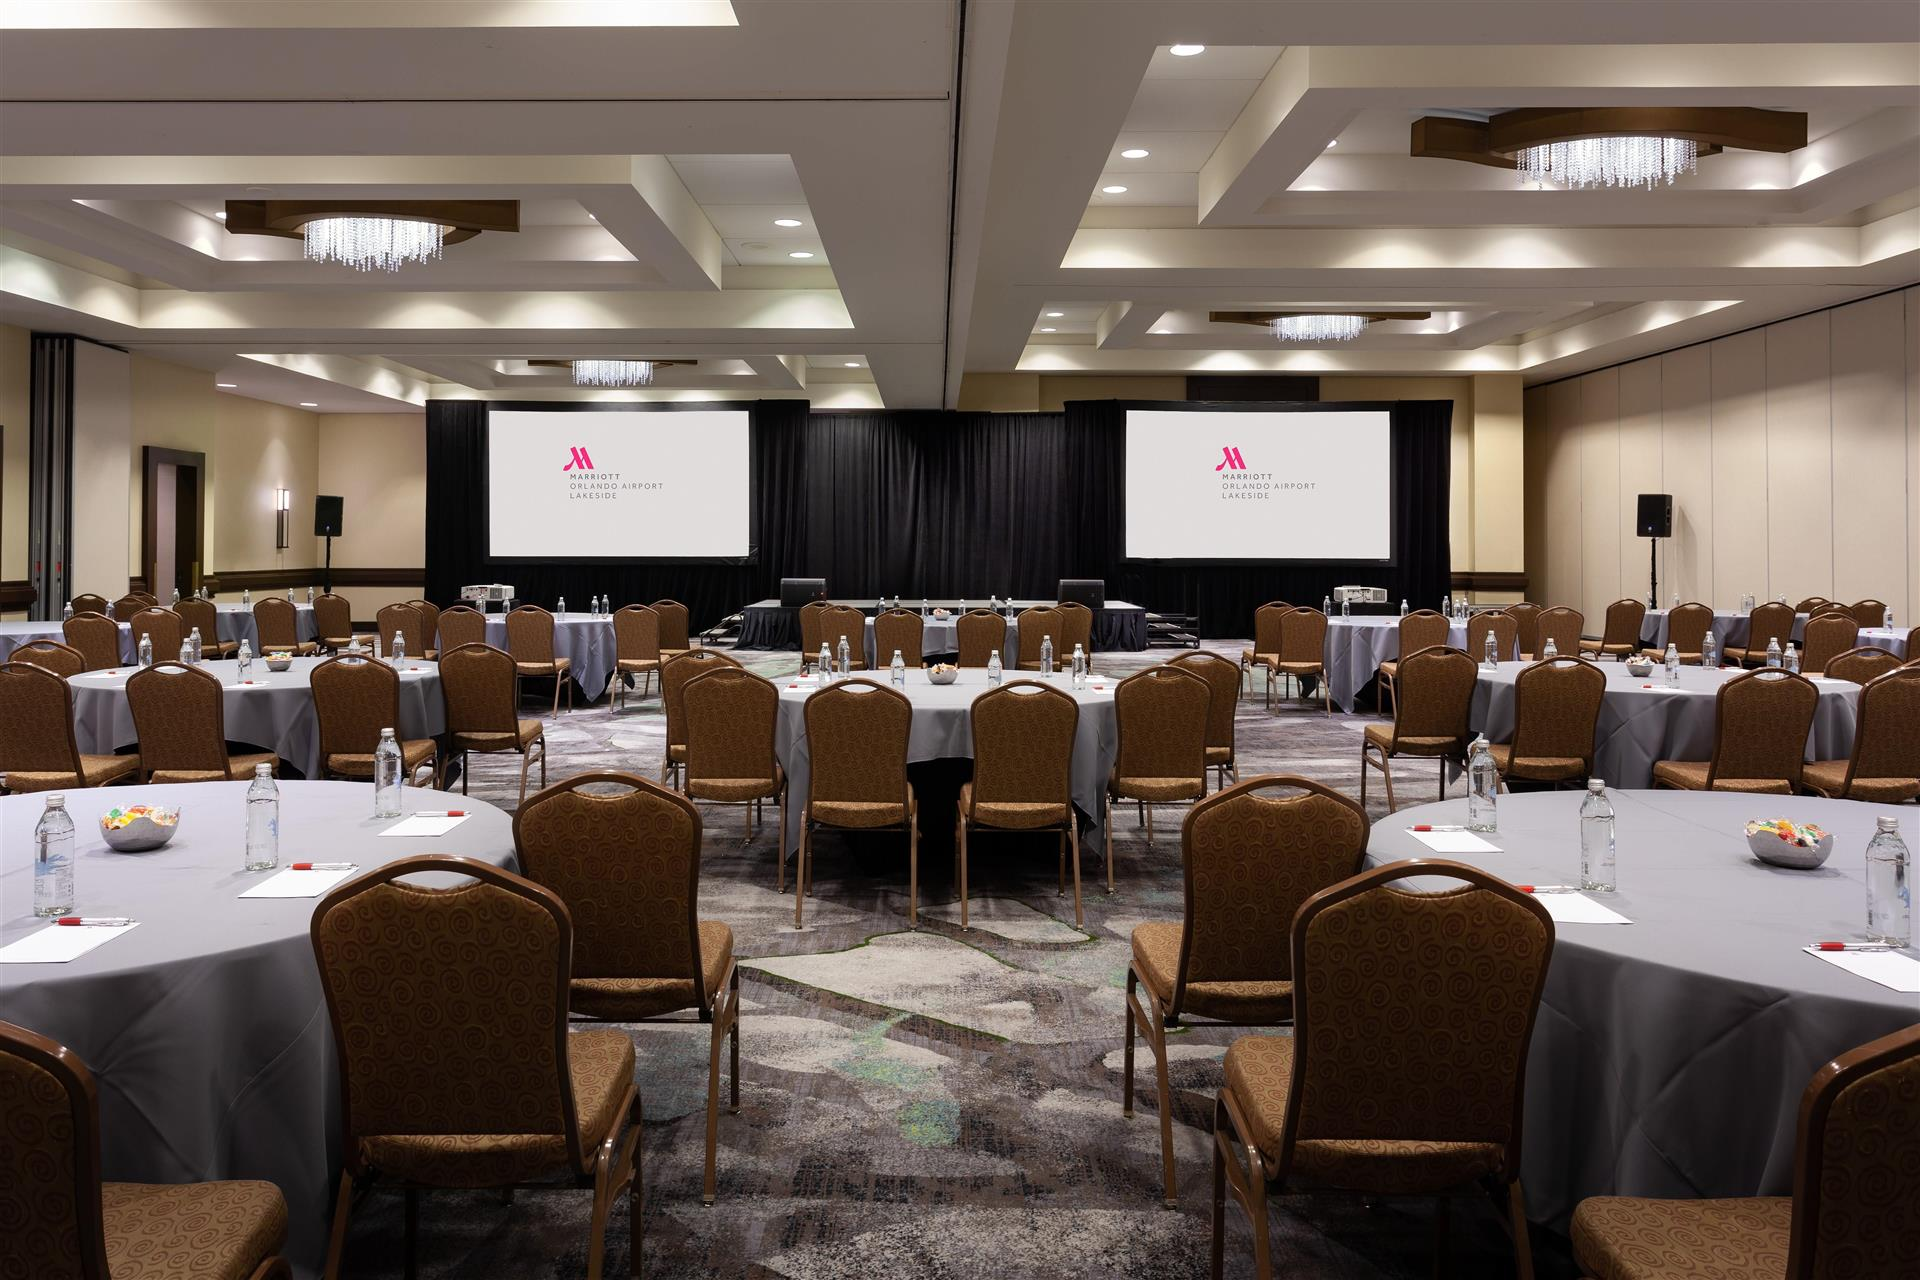 Meetings and events at Orlando World Center Marriott